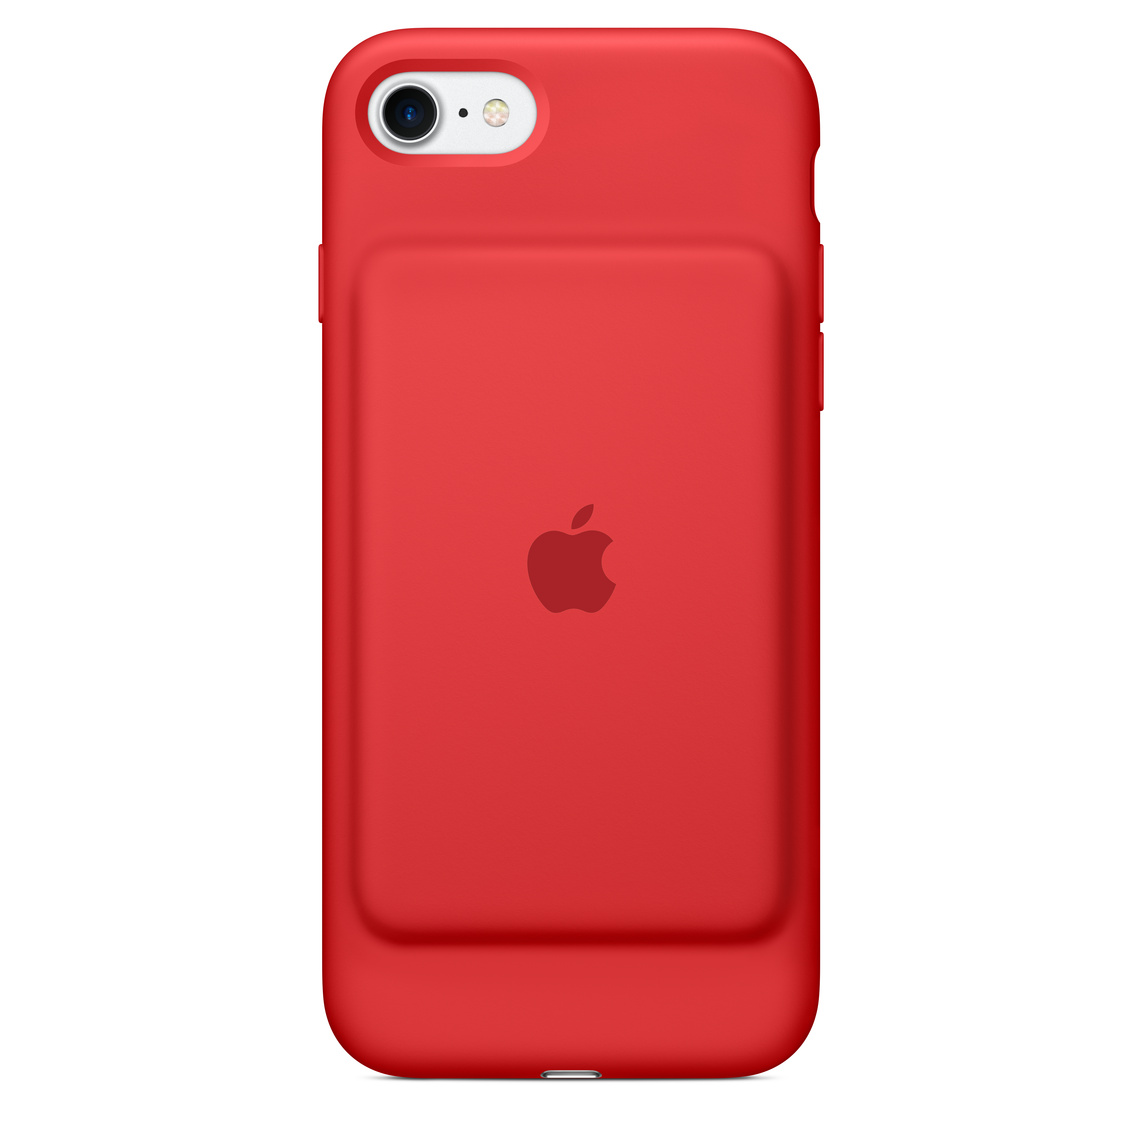 best sneakers 3eda2 ab93b iPhone 7 Smart Battery Case - (PRODUCT)RED